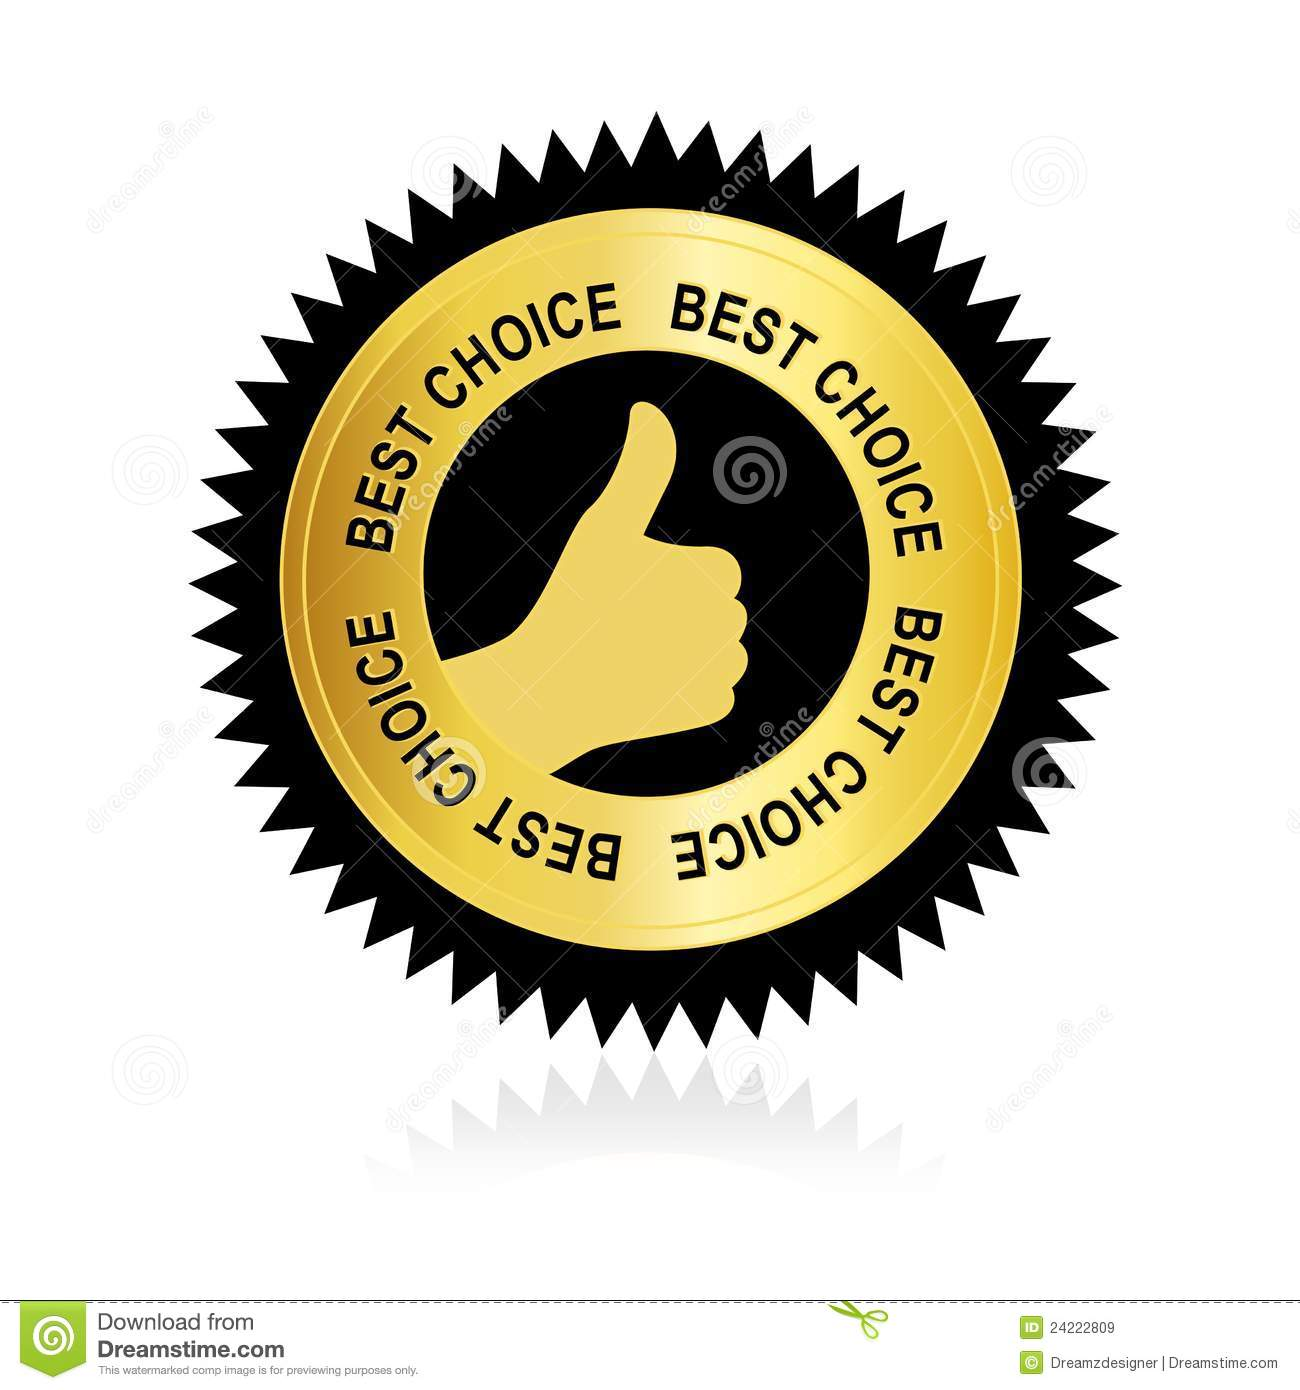 The Best Image Imagefree Co: Best Choice Stock Vector. Illustration Of Golden